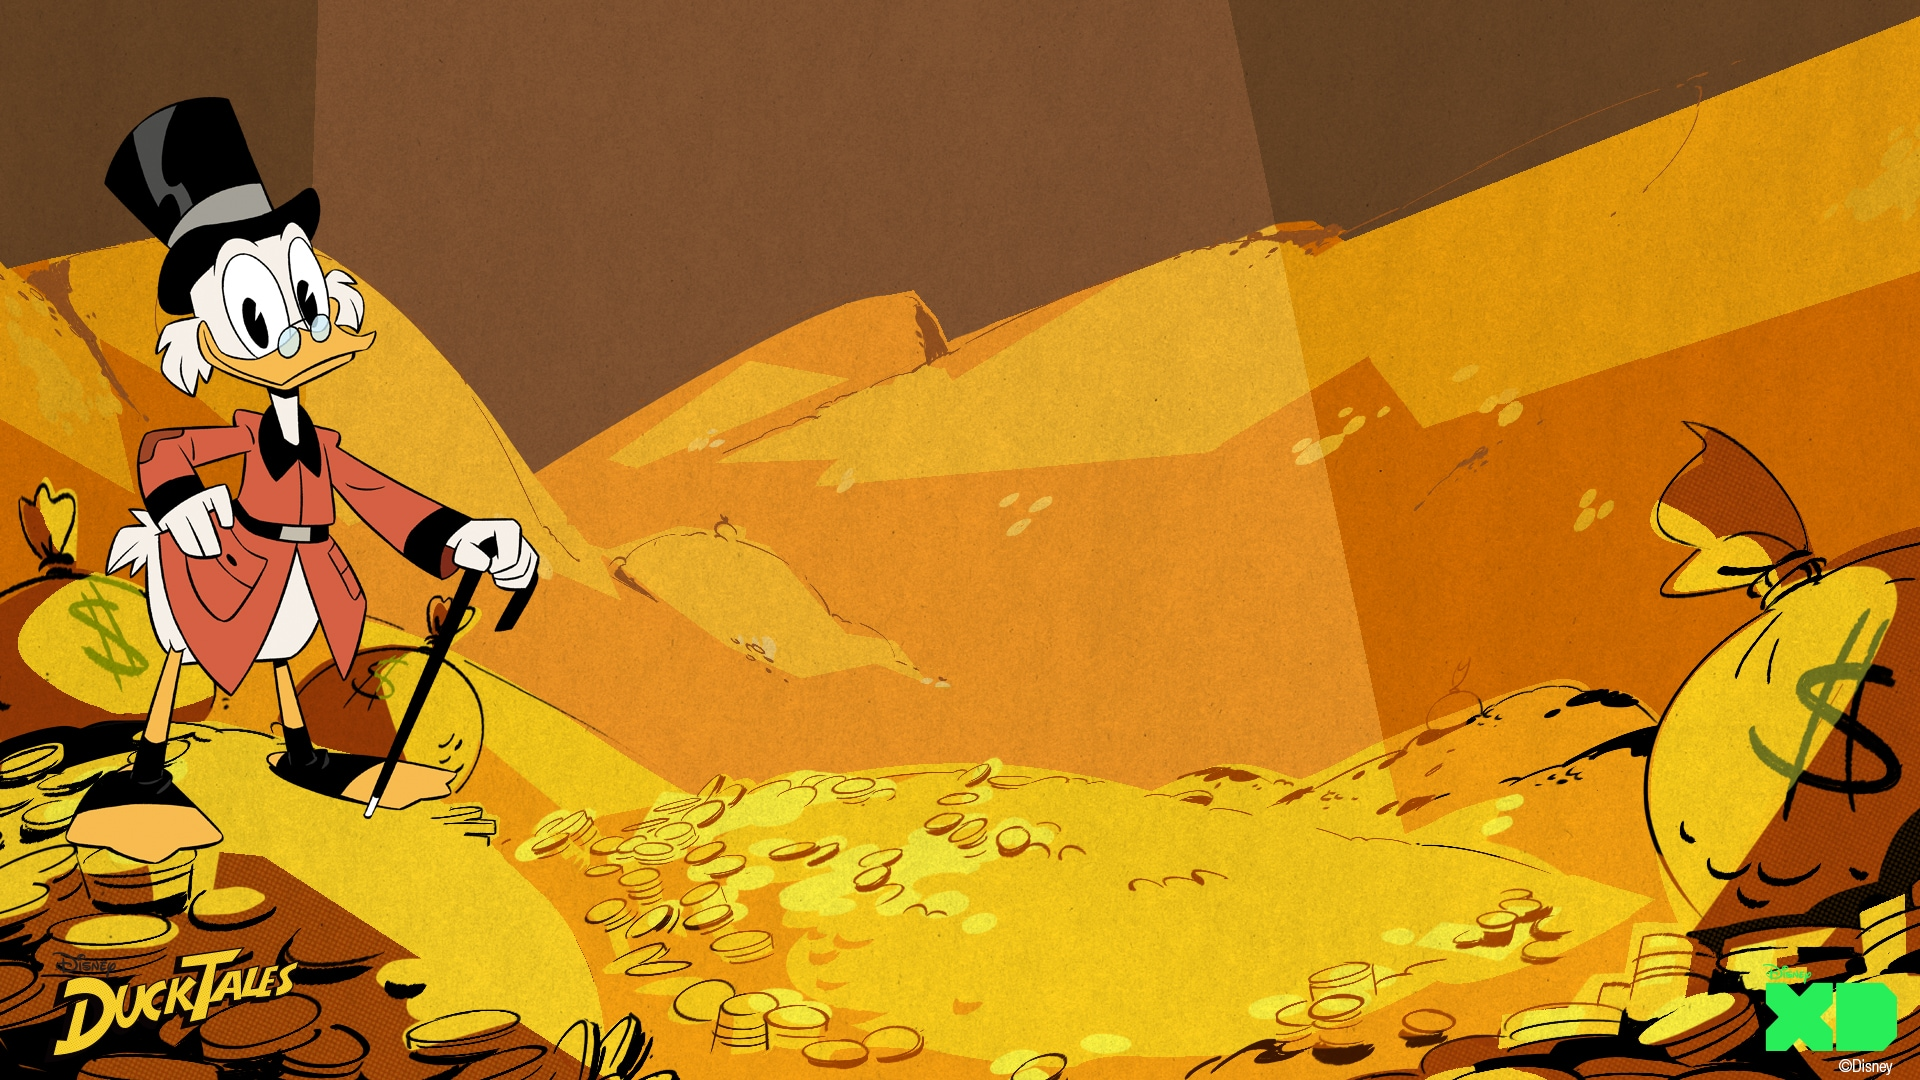 DuckTales Backgrounds